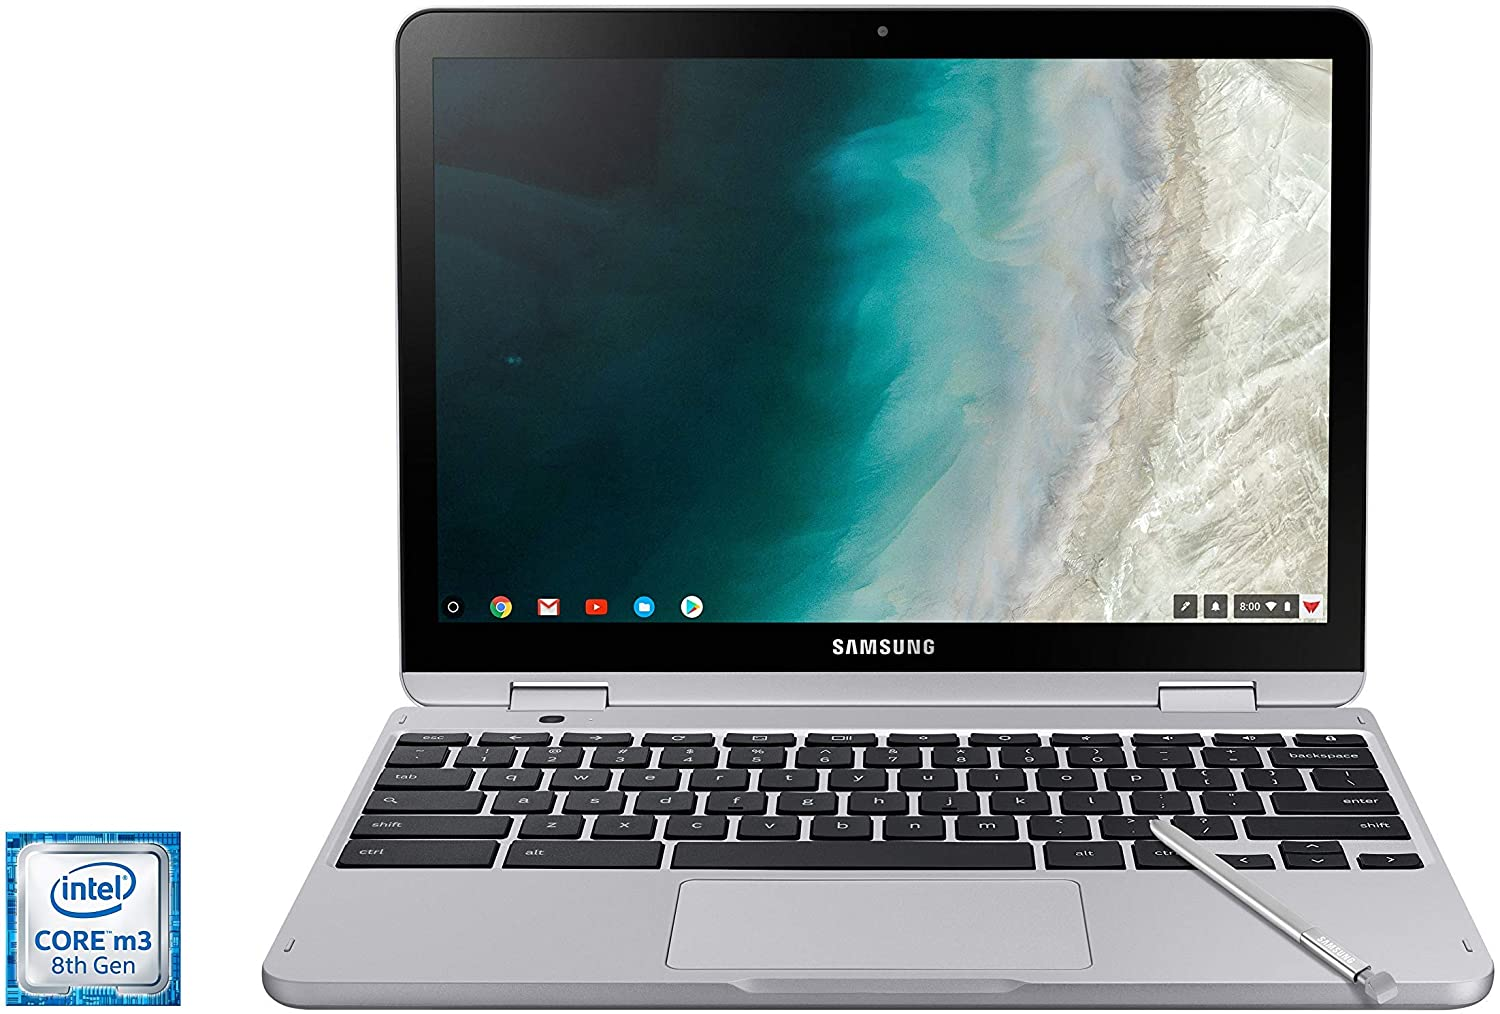 "Samsung Chromebook Plus V2, 2-in-1, Intel Core m3, 4GB RAM, 64GB eMMC, 13MP Camera, Chrome OS, 12.2"", 16:10 Aspect Ratio, Light Titan (XE520QAB-K02US) (Renewed)"